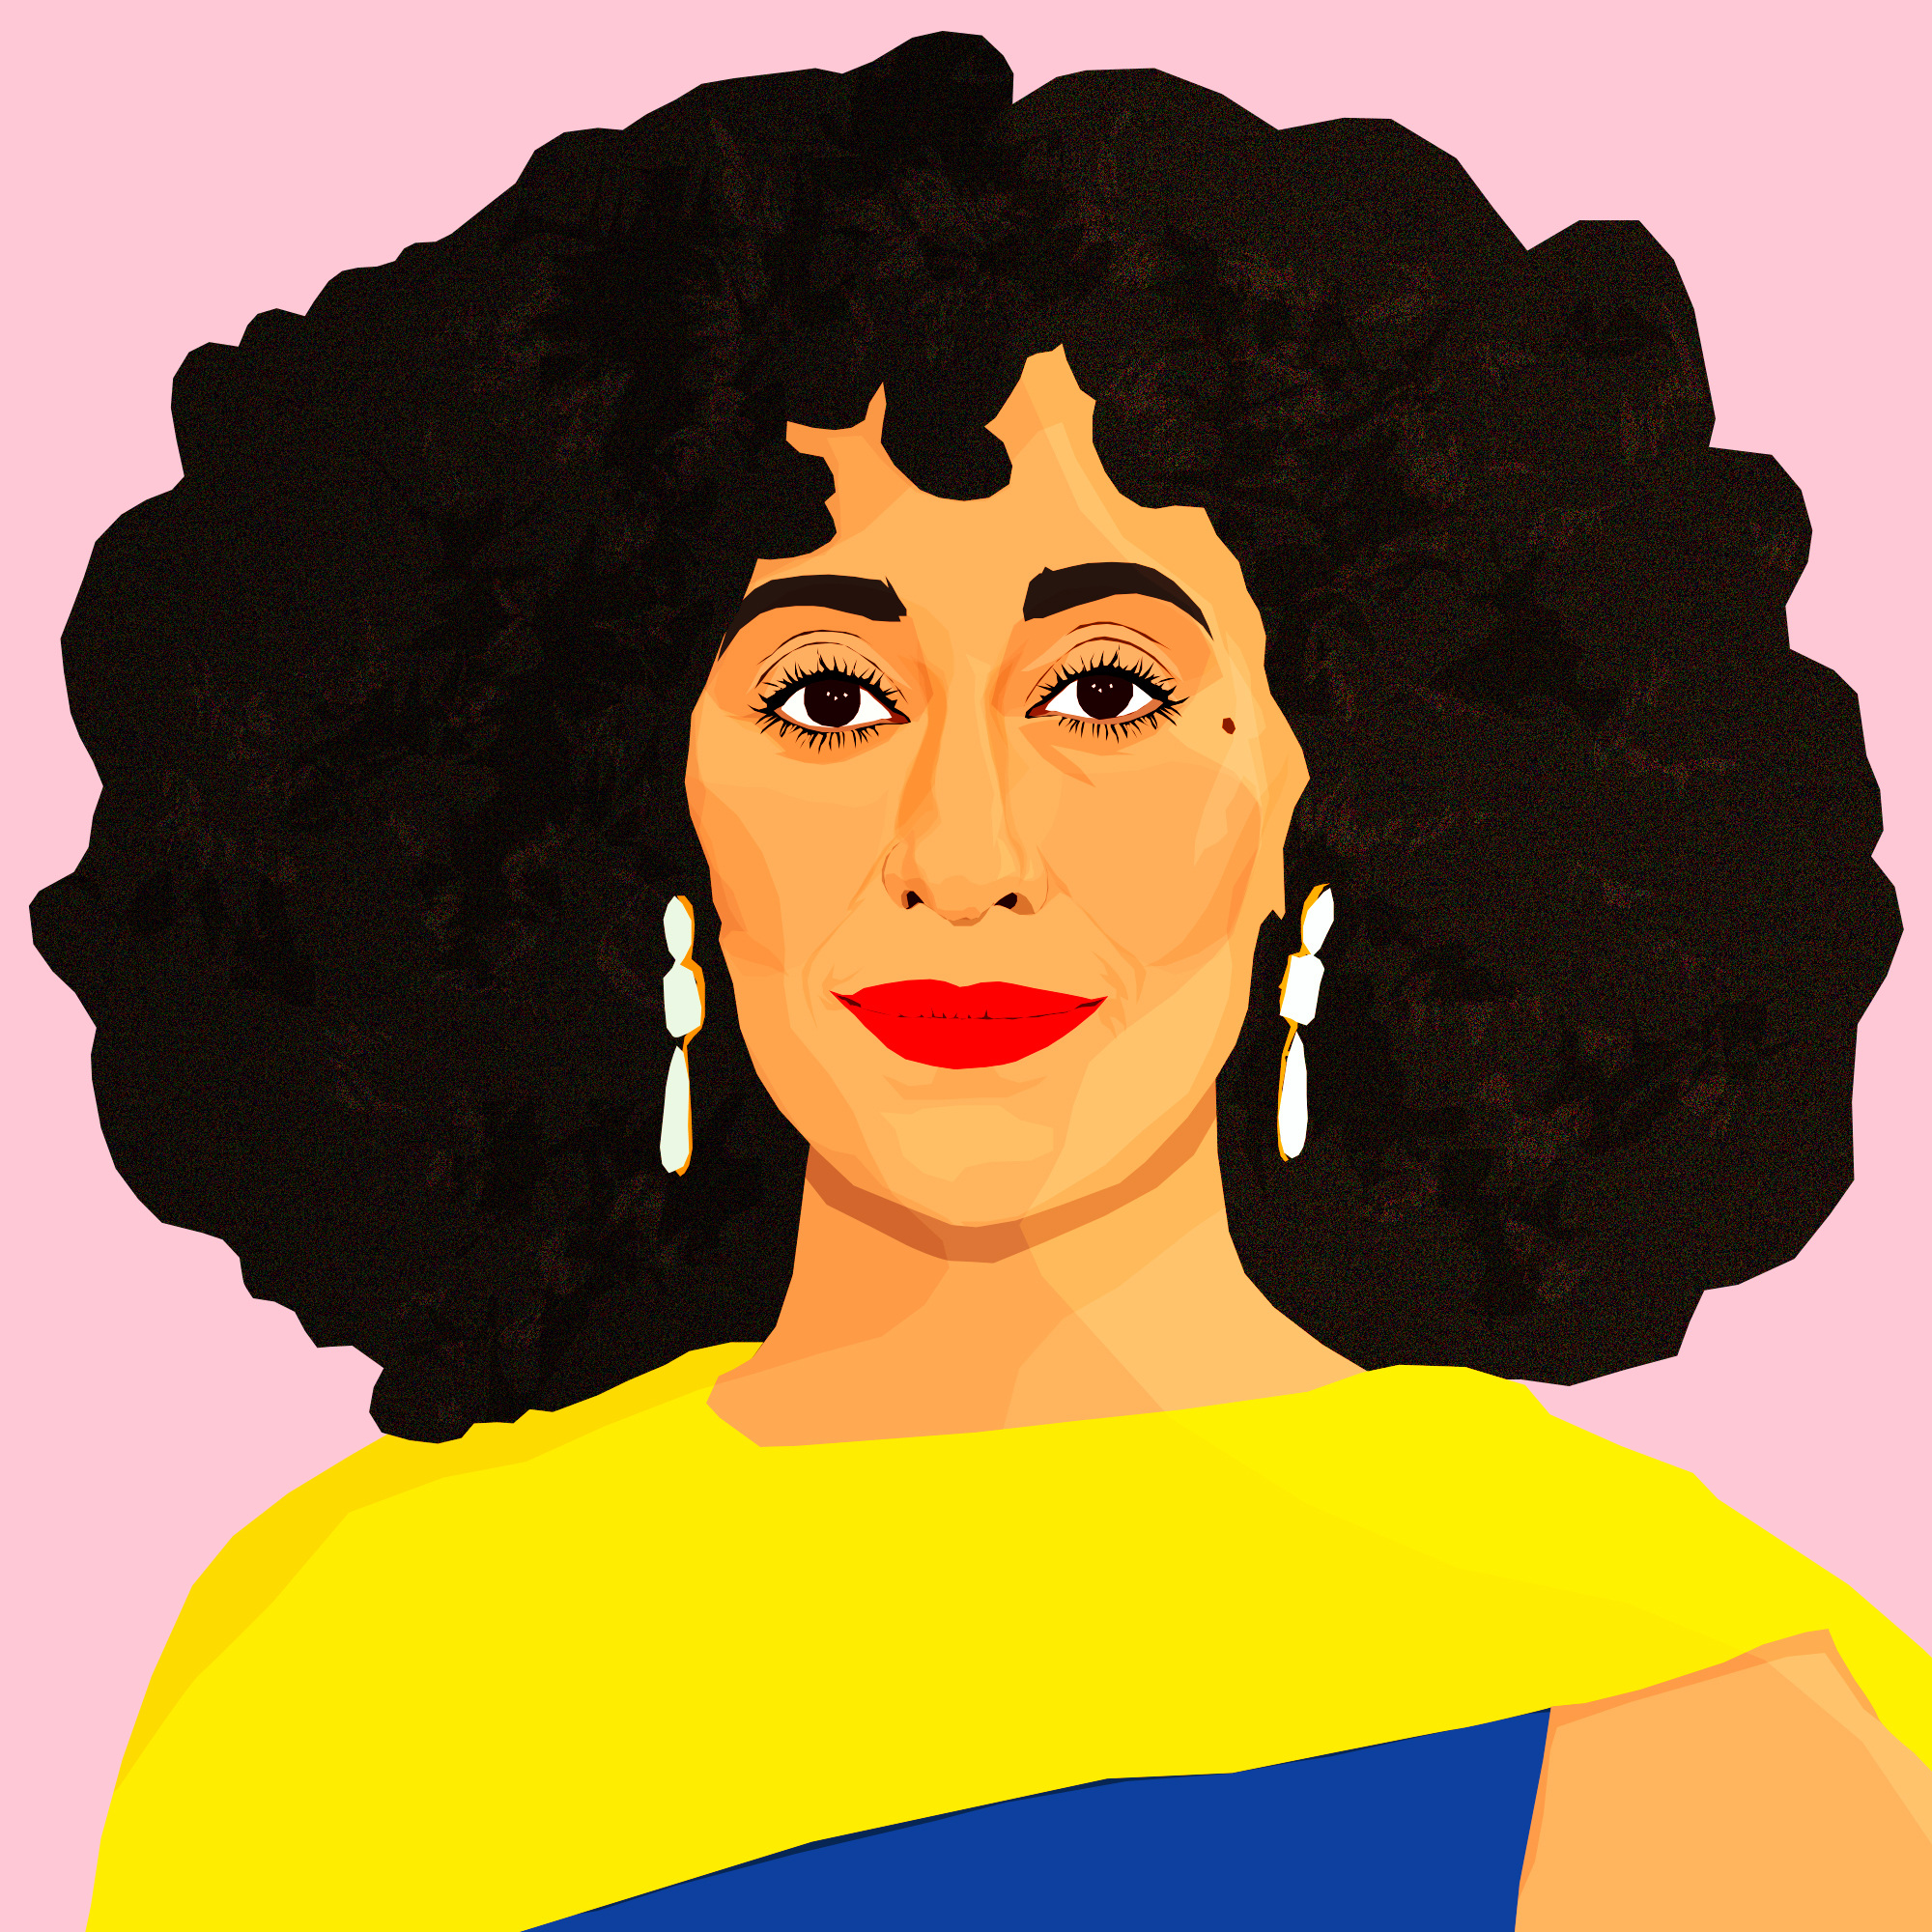 Money Talks, series of celebrity interviews about personal finance, for InStyle.com, 2018  Illustrations by  Monica Ahanonu